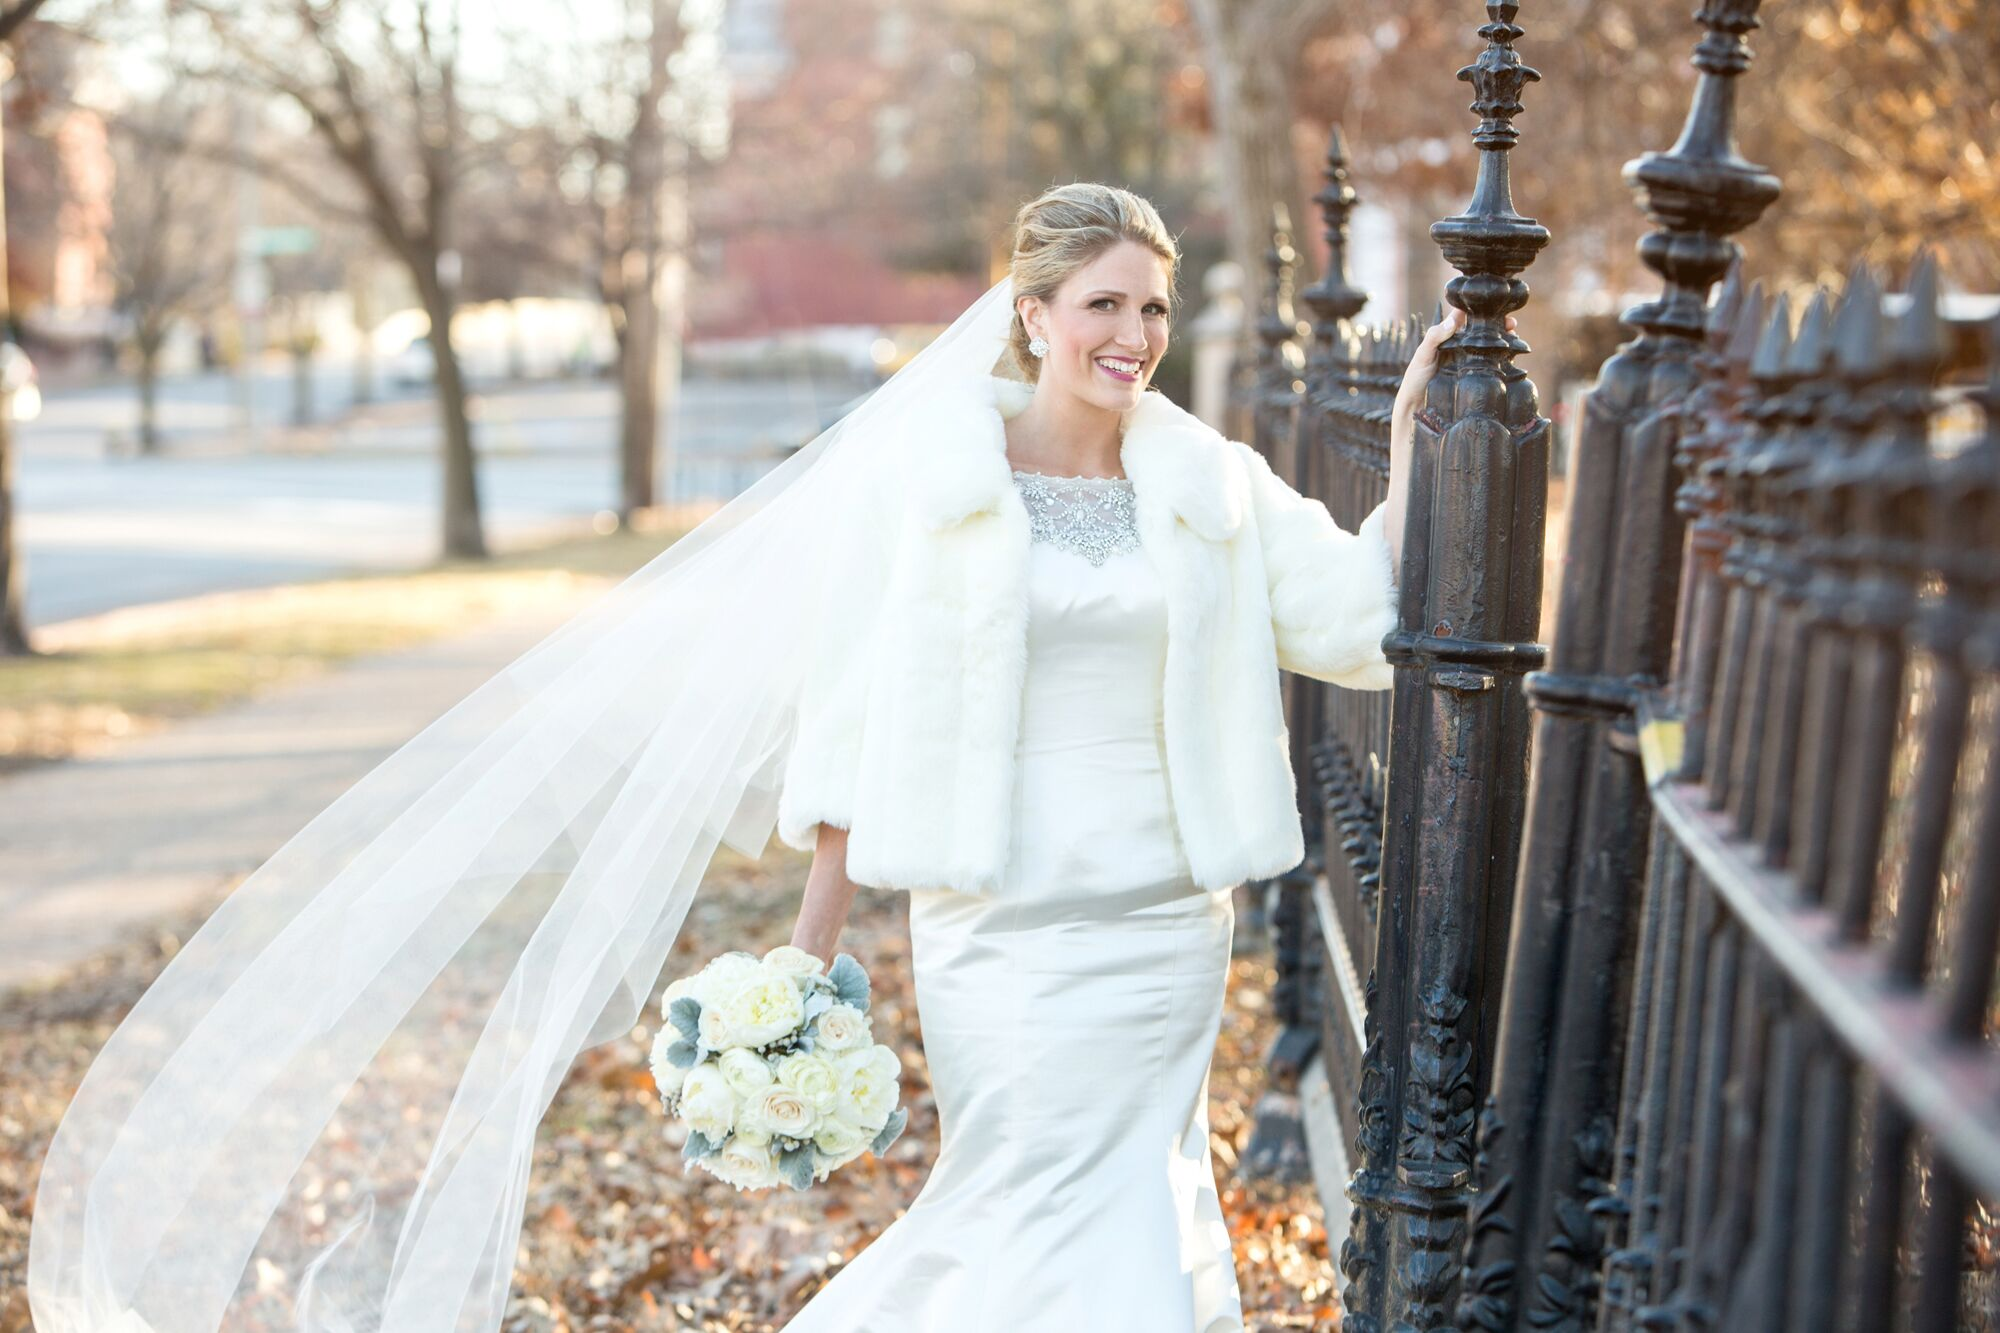 White Wedding Gowns: All White Wedding Dress And Veil With White Fur Coat